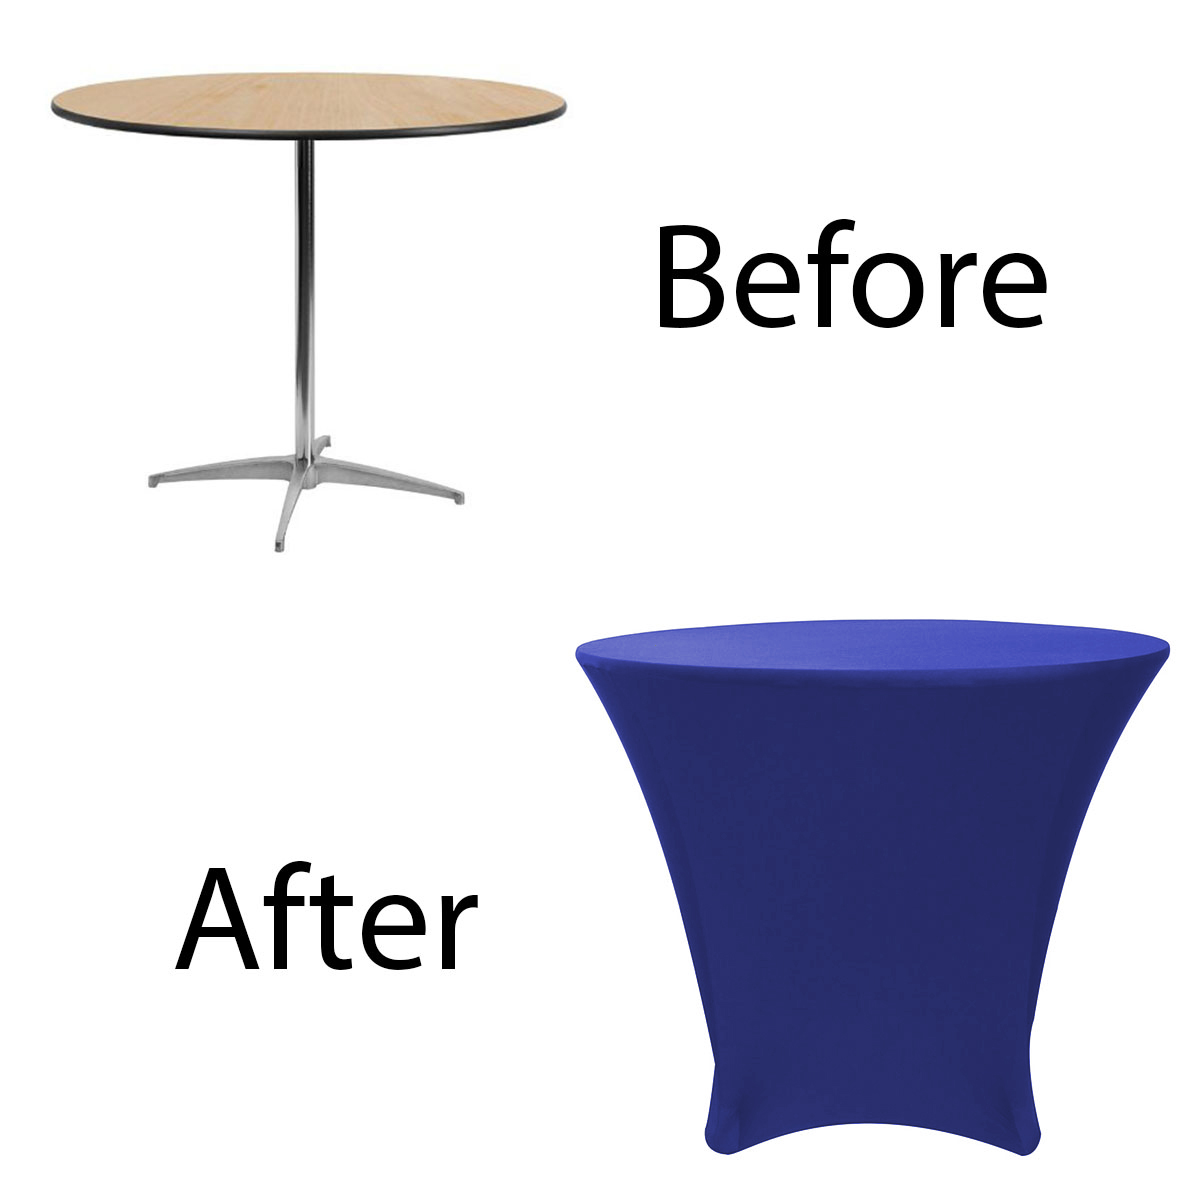 36-30-inch-lowboy-cocktail-spandex-table-covers-royal-before-after.jpg